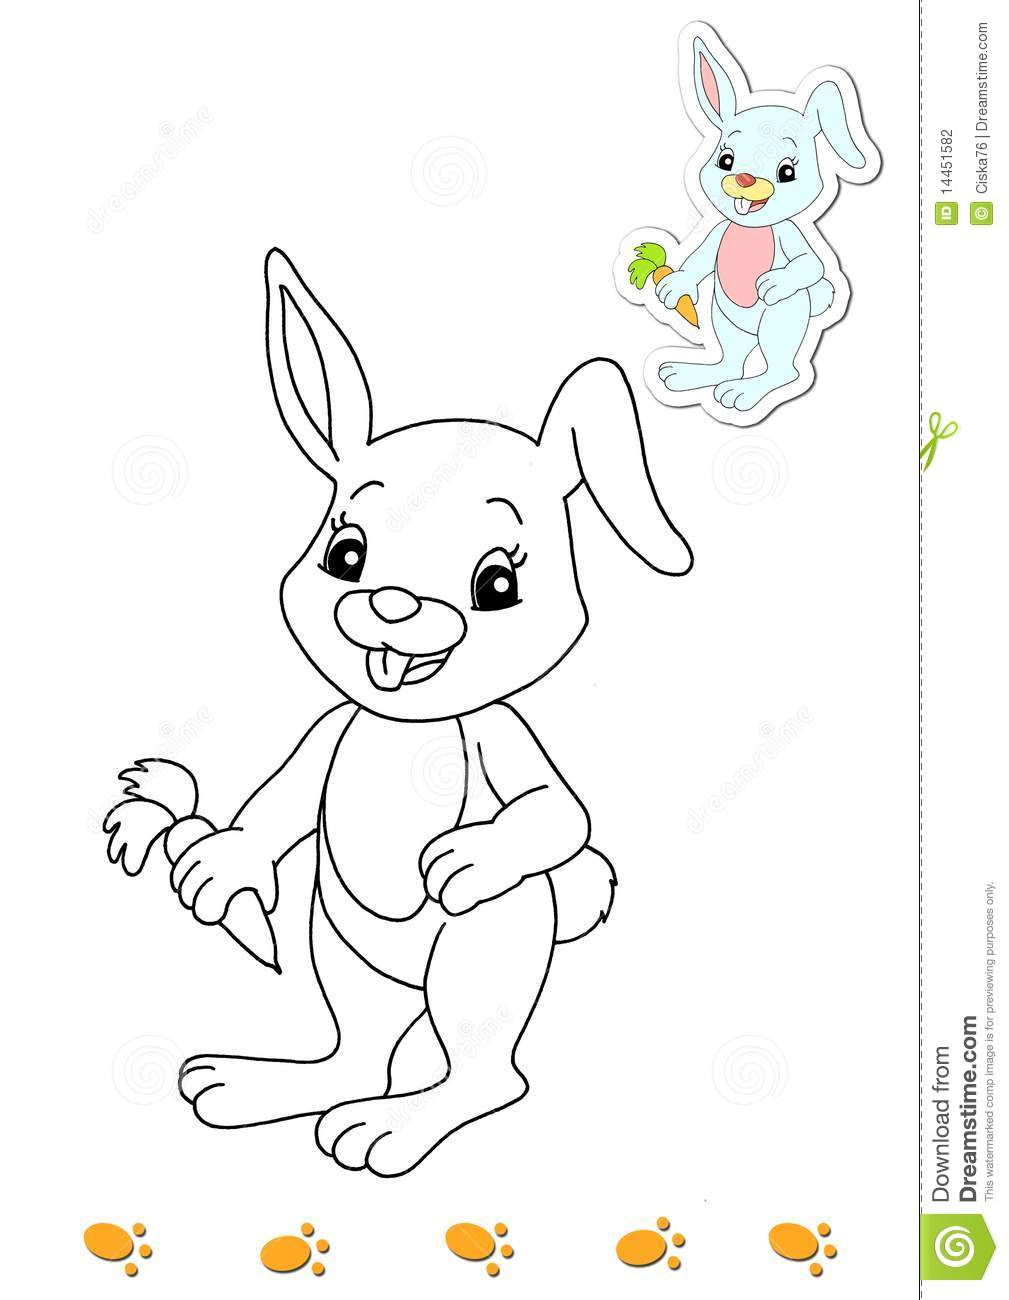 Coloring Book Of Animals 13 - Rabbit Stock Photography - Image ...